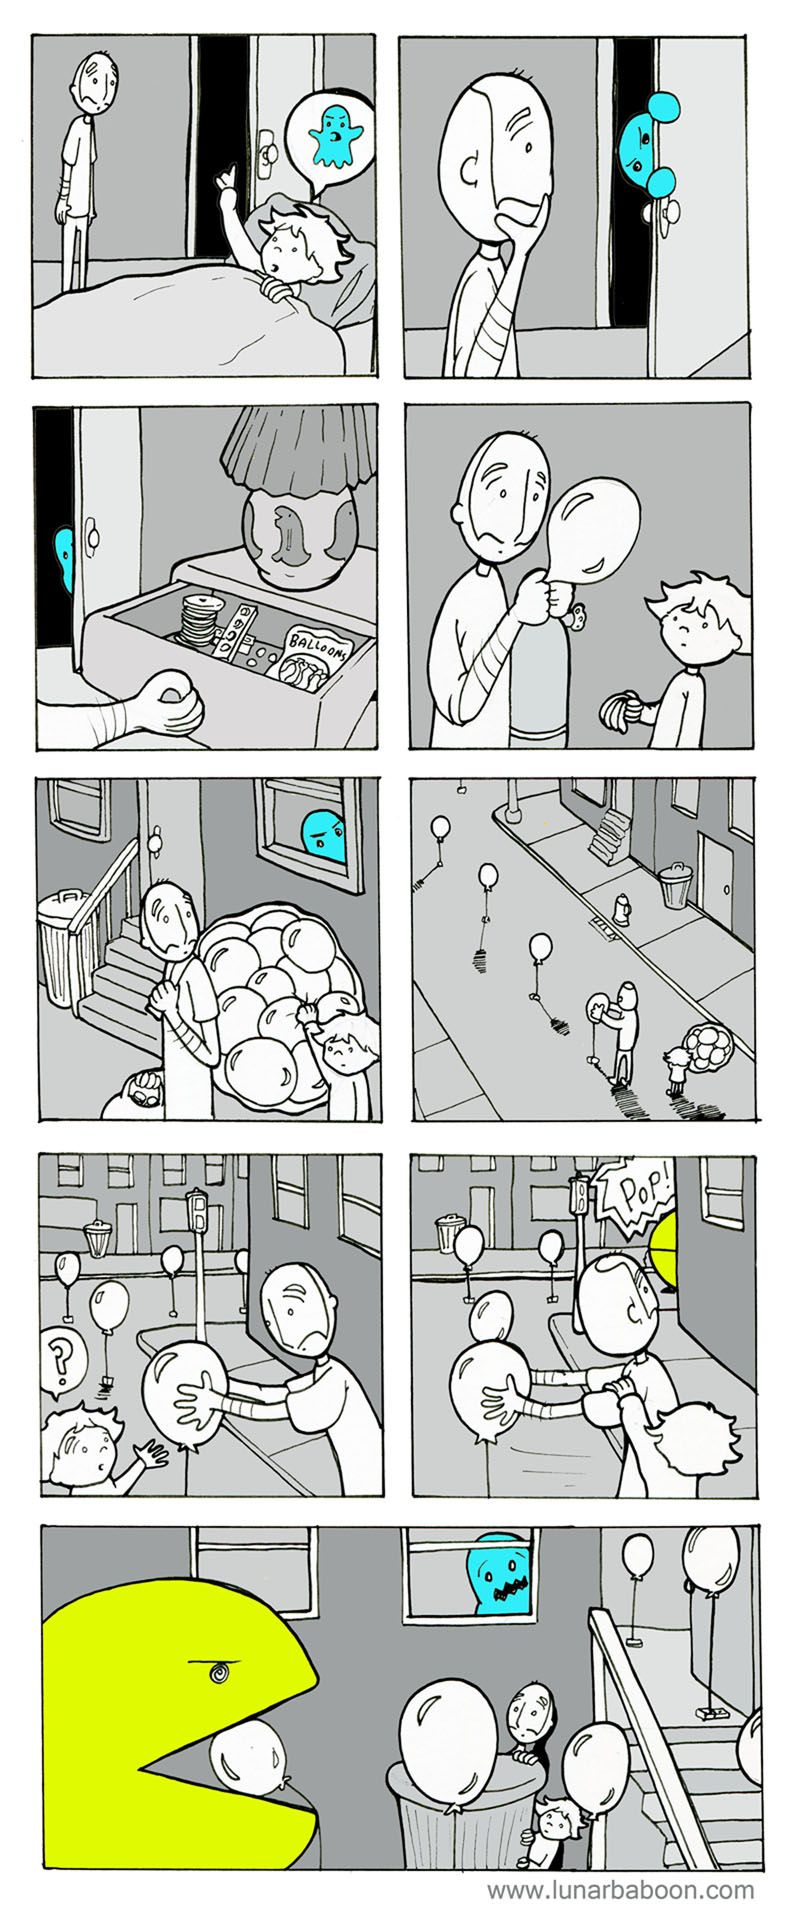 lunarbaboon - Comics - Ghost!